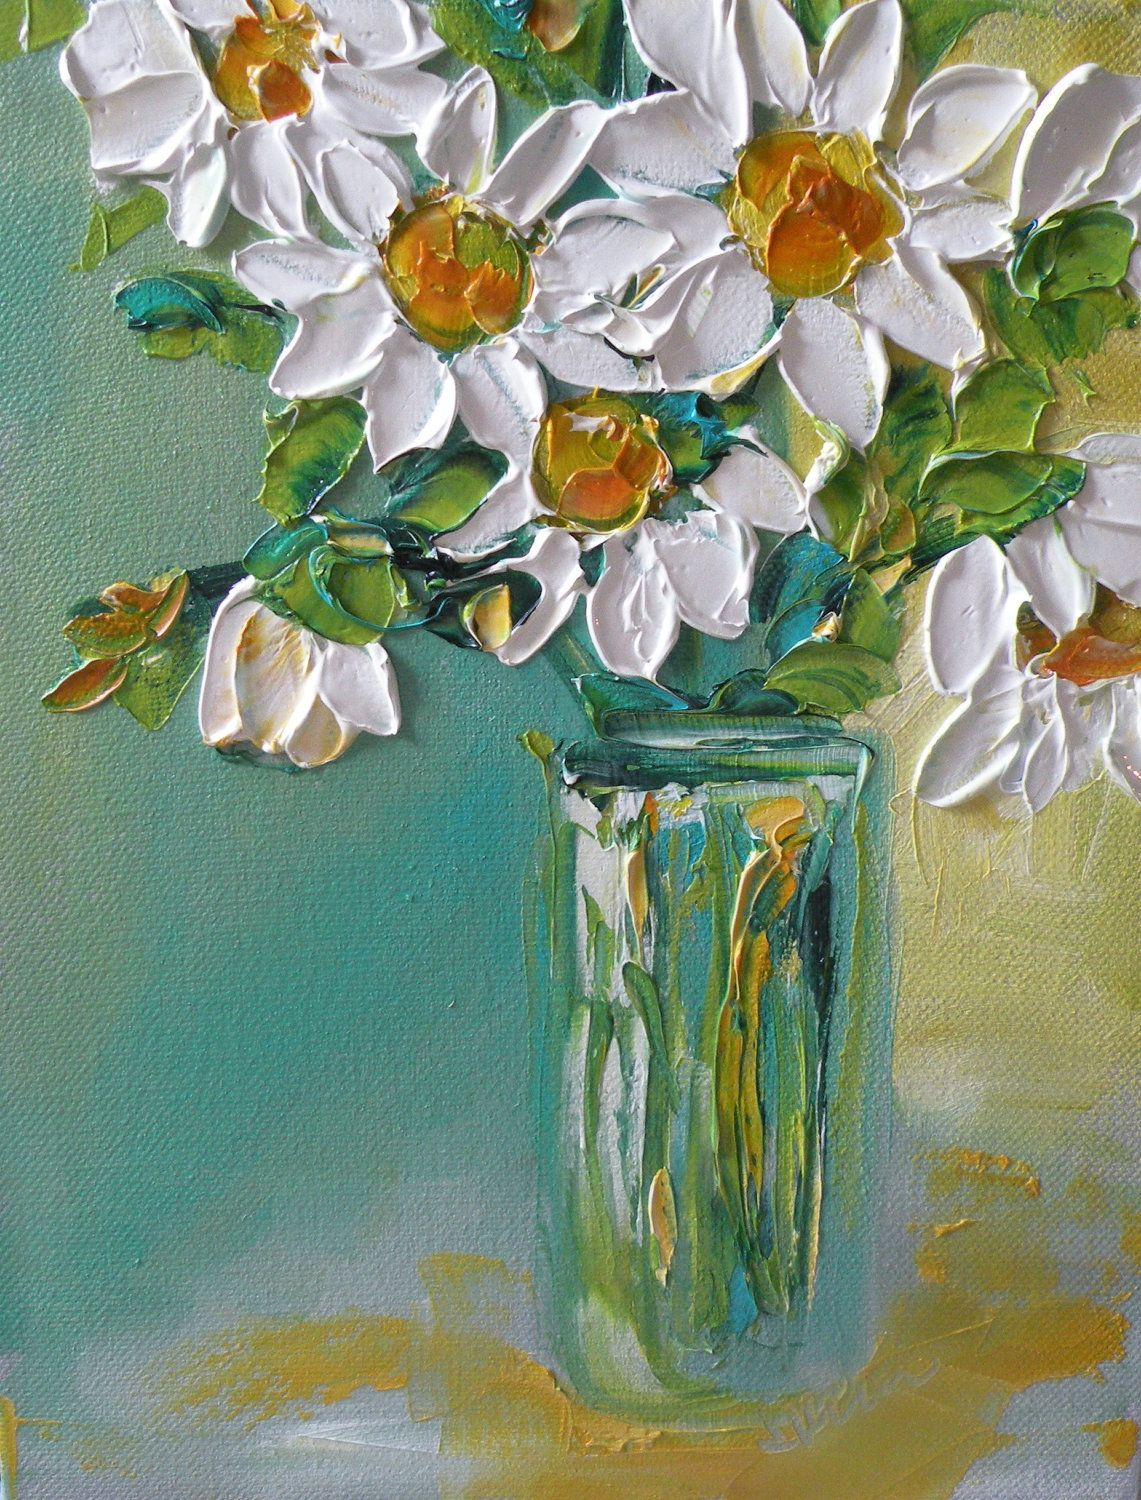 original oil painting impasto daisy flowers by